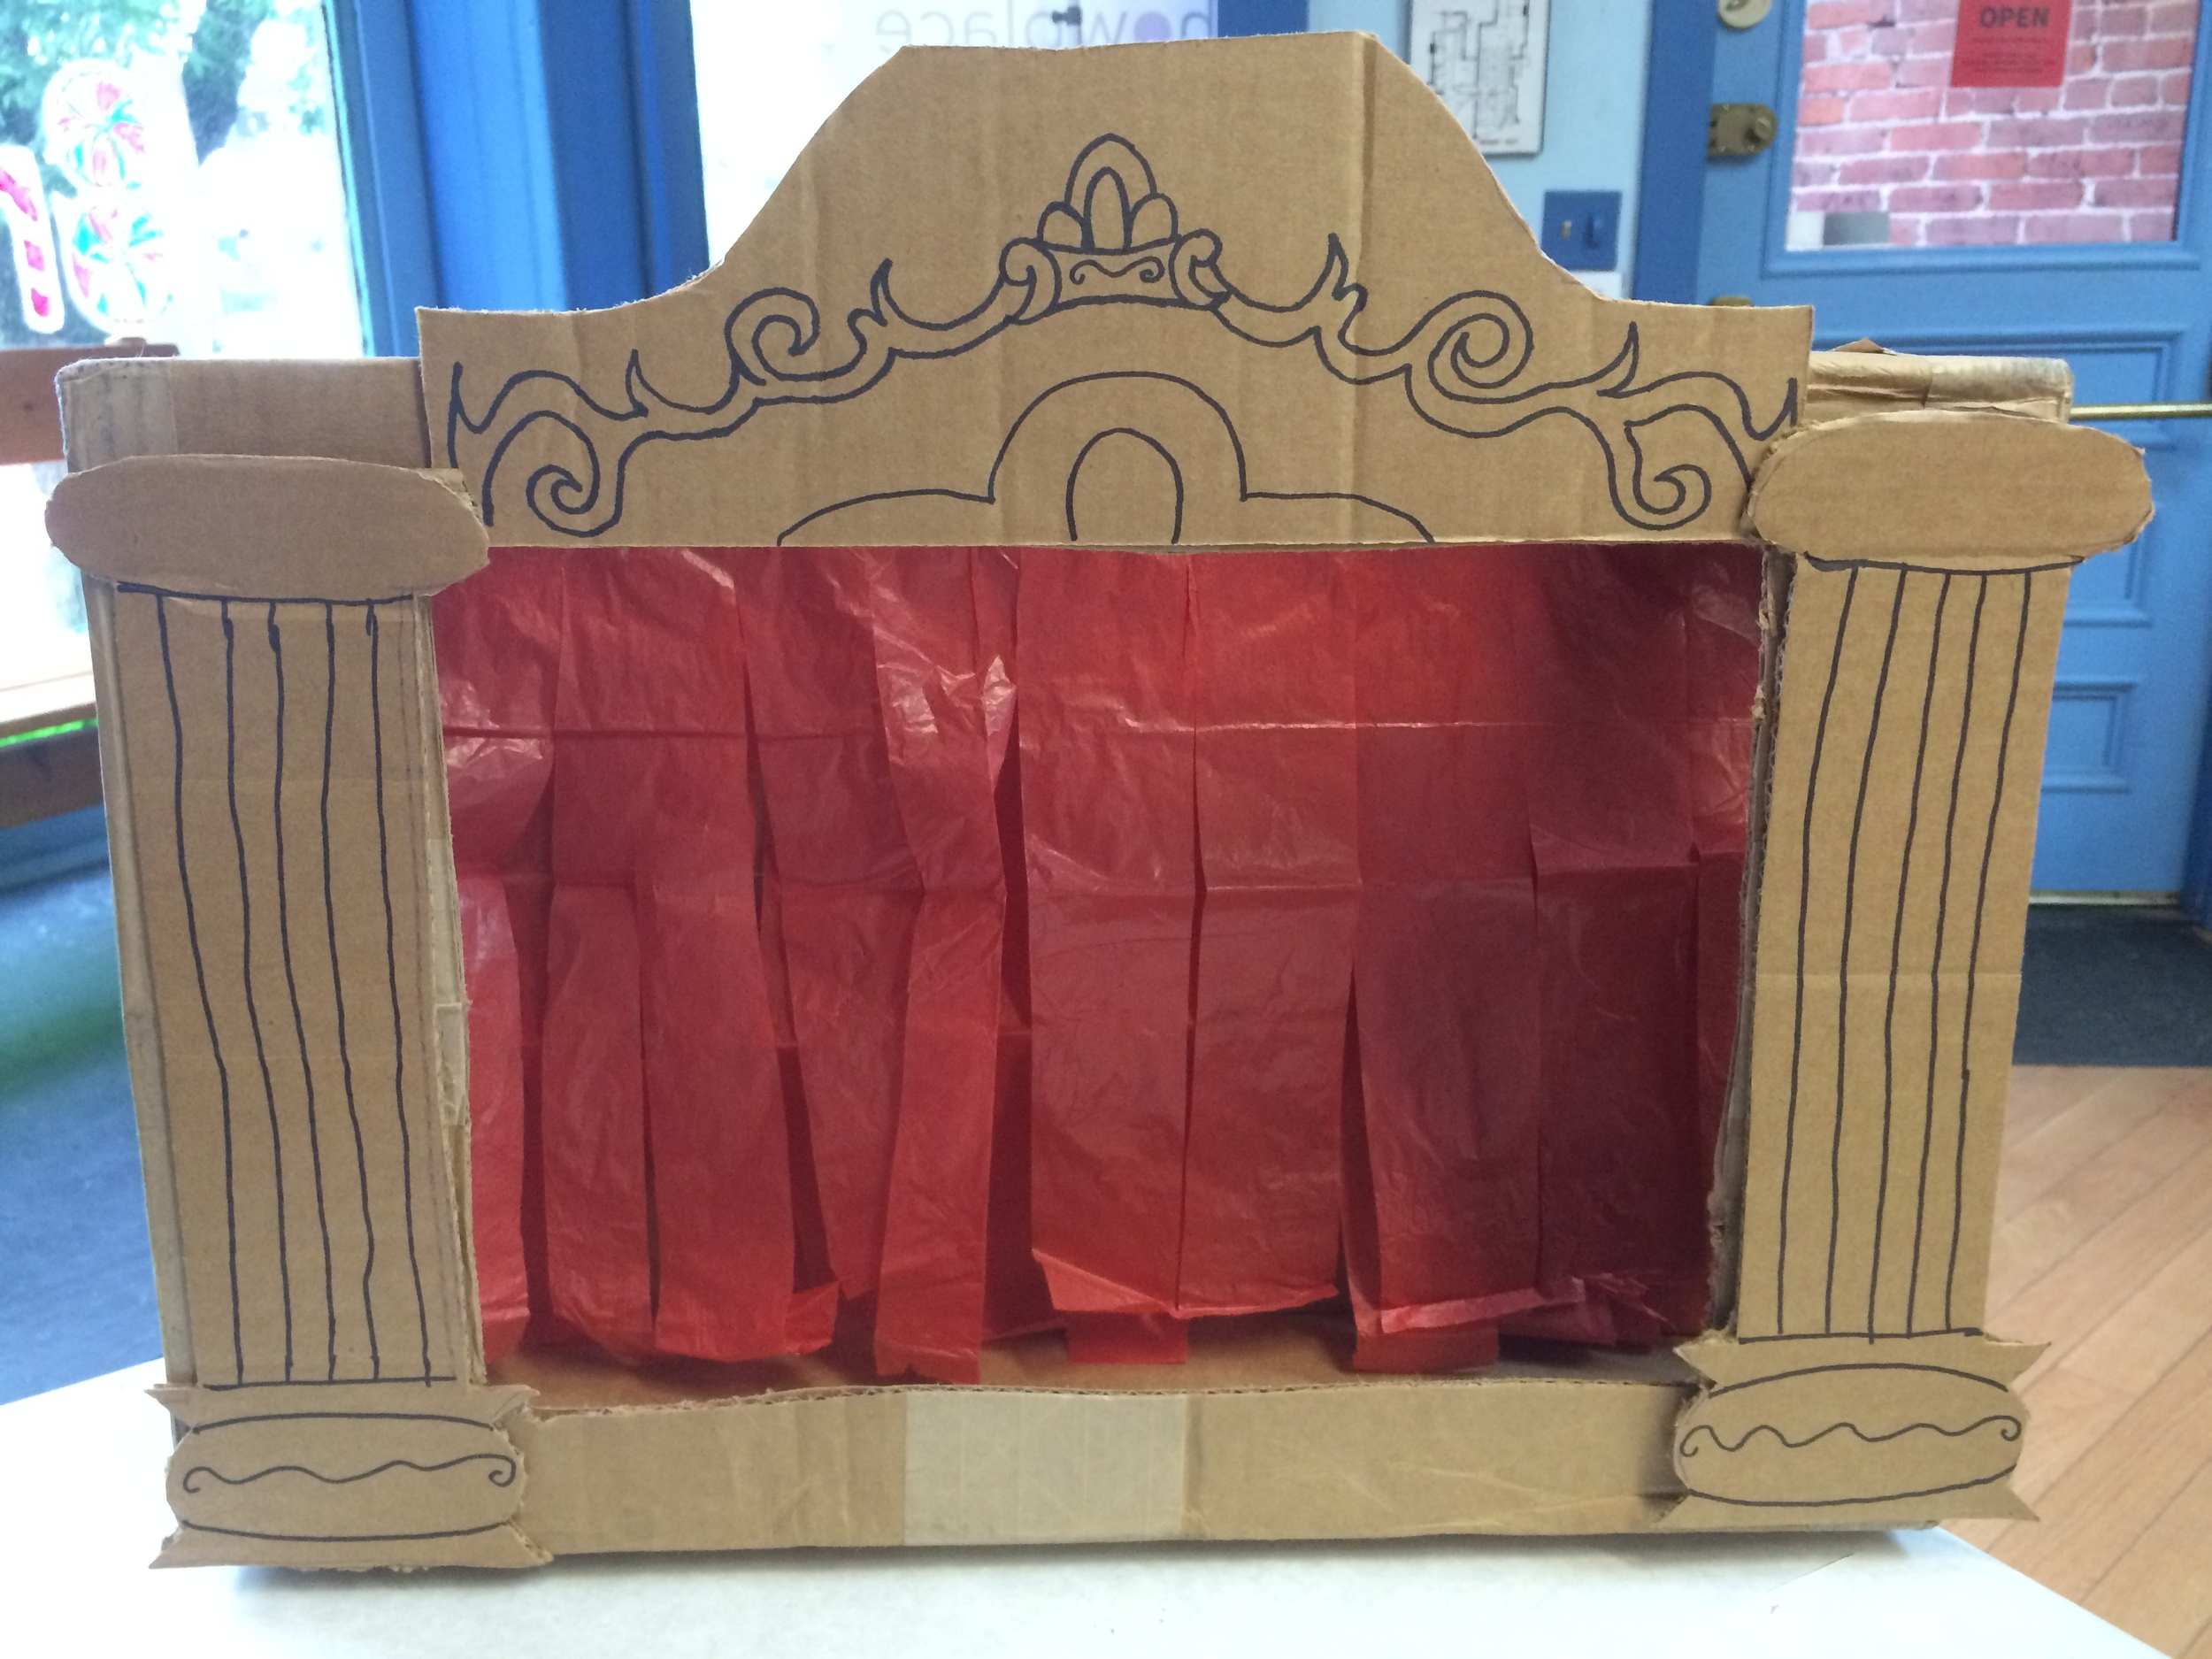 Your completed theatre should look like this. Now you can put on puppet shows of your own! If you recreate this DIY, be sure to share a picture with us on Instagram with the tag #PuppetShowplaceDIY. Happy puppeting!